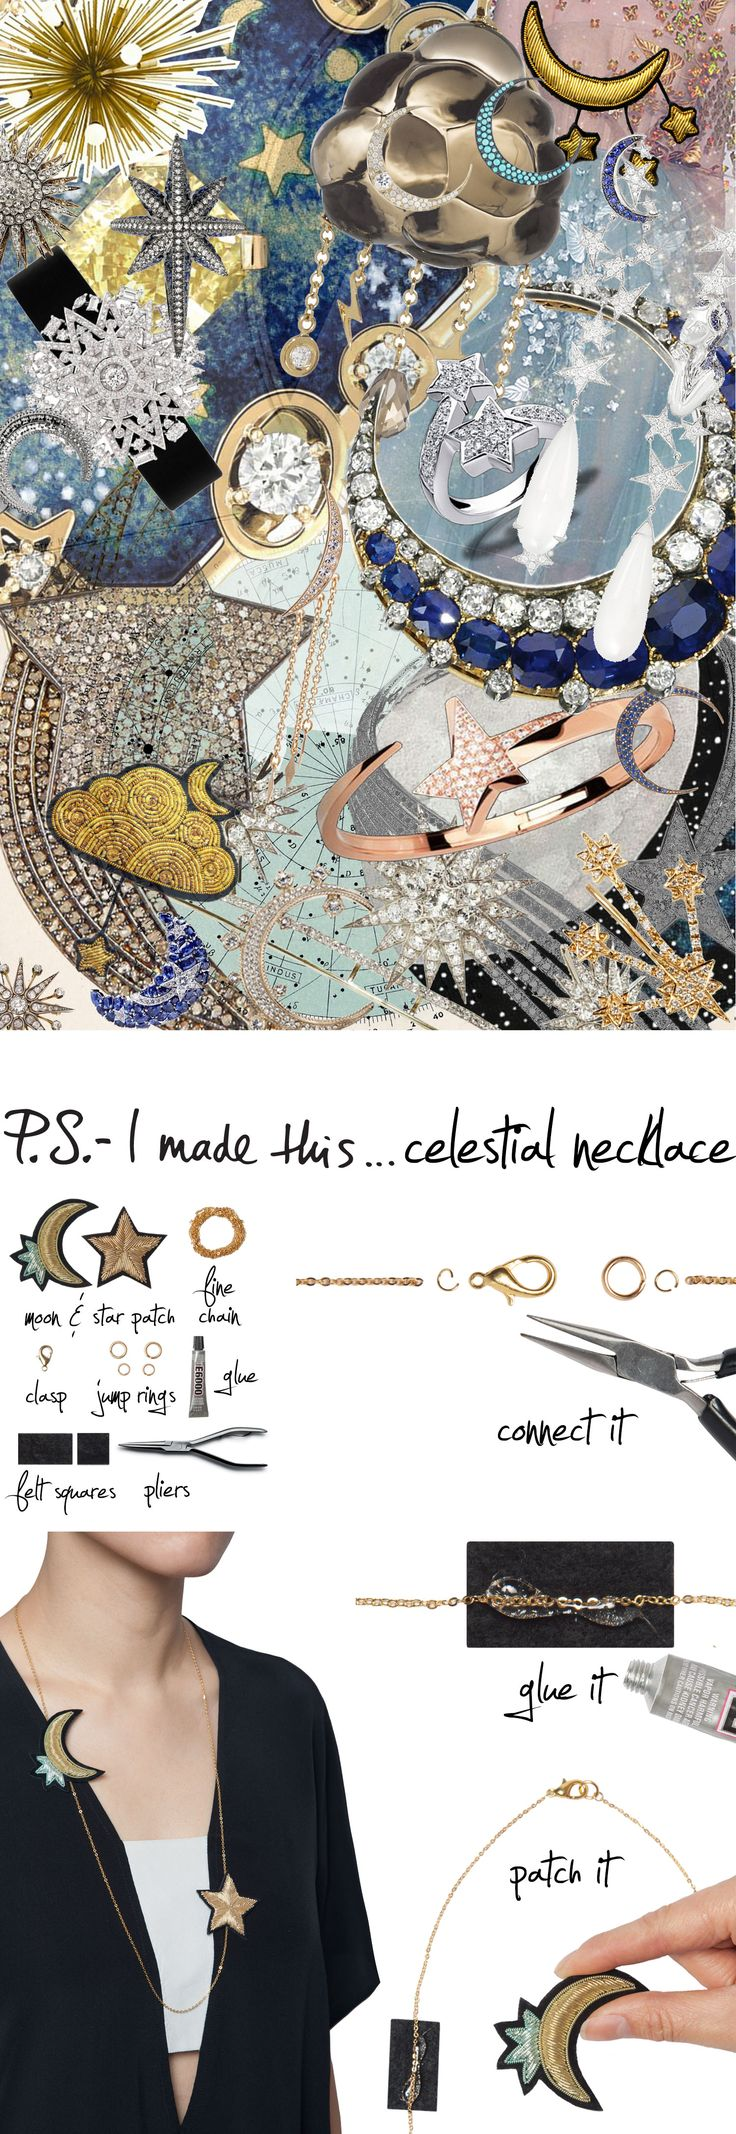 P.S.- I made this...Celestial Necklace #PSIMADETHIS #DIY